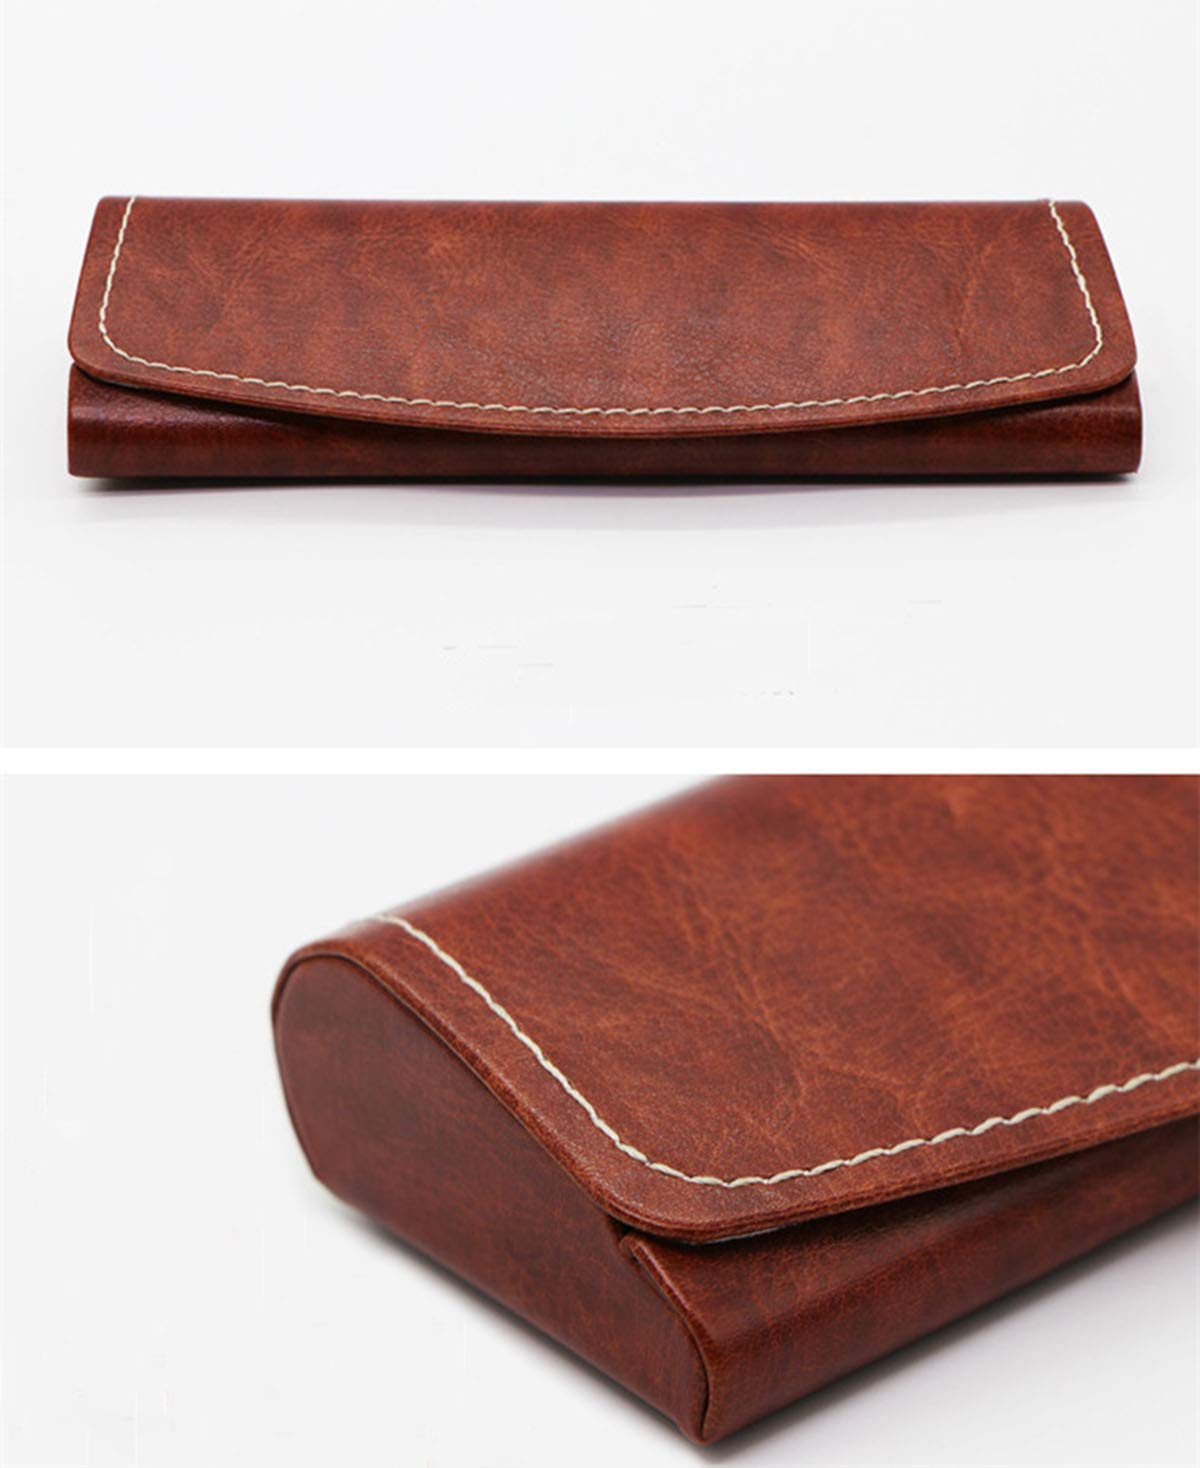 PU Leather Hard Shell Eyeglass Case Portable Sunglasses Glasses Holder Pouch (Brown) by Bauson (Image #3)